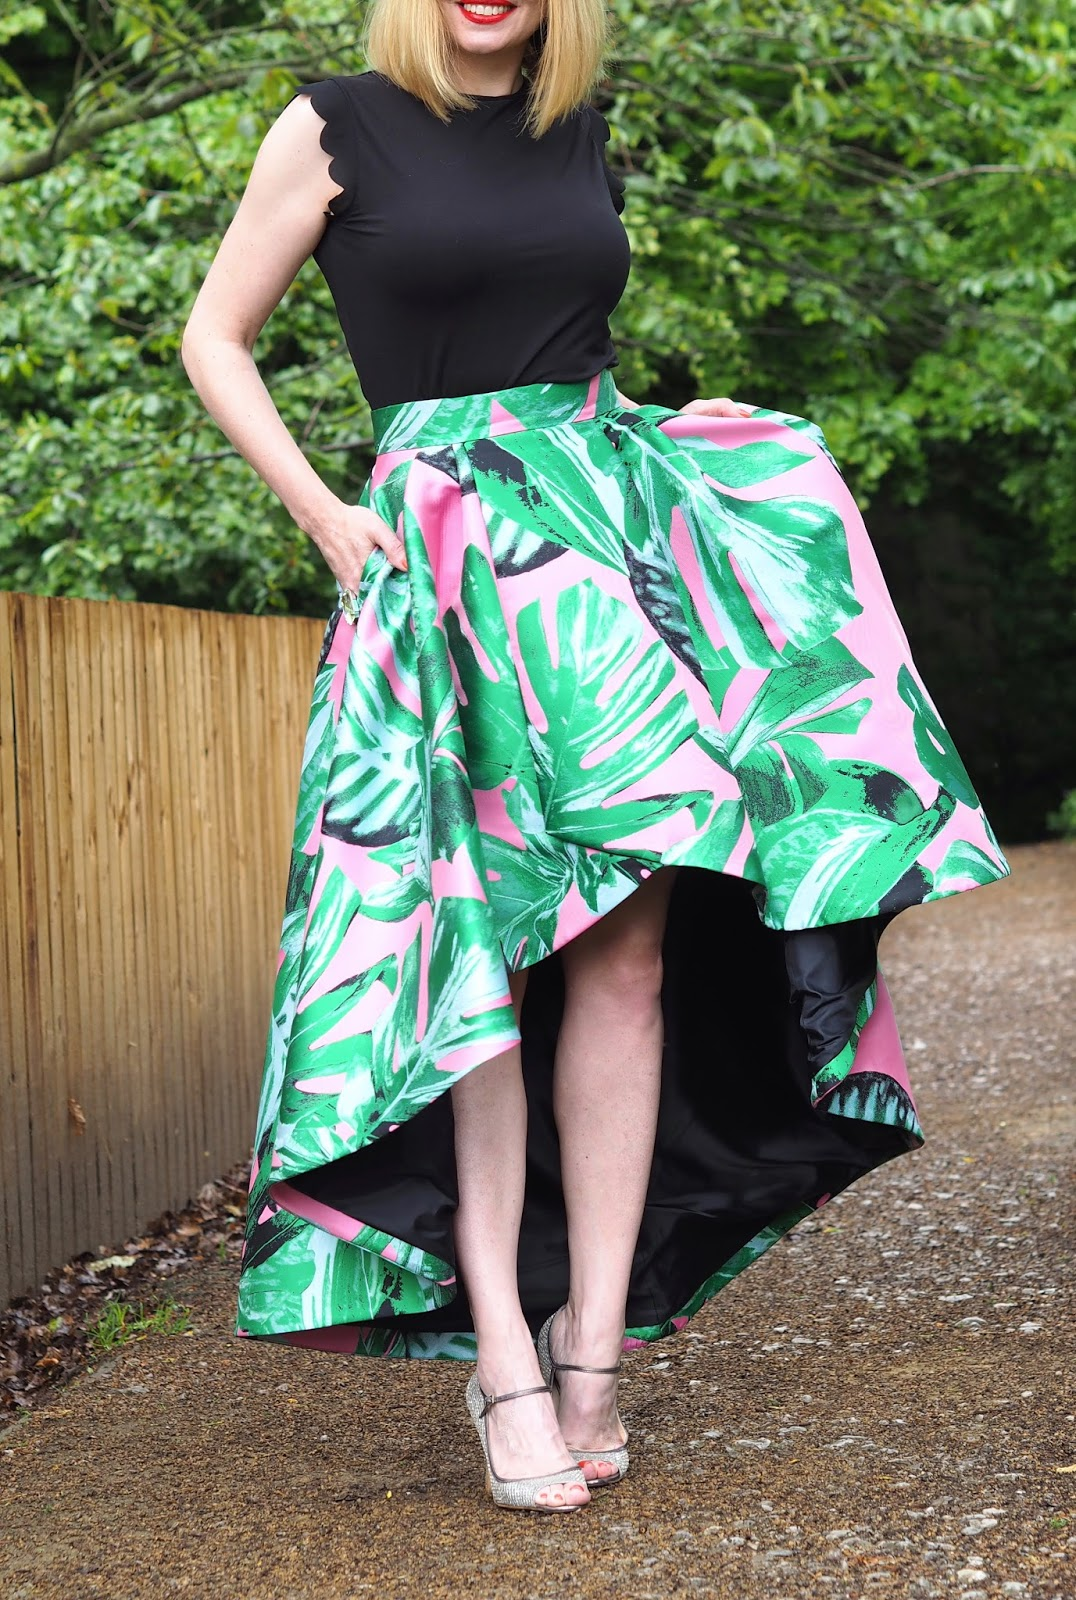 Asymmetric hem statement  summer skirt, pink and black with large leaves, champagne glitter Jimmy Choo sandals, occasionwear, black scalloped sleeve top